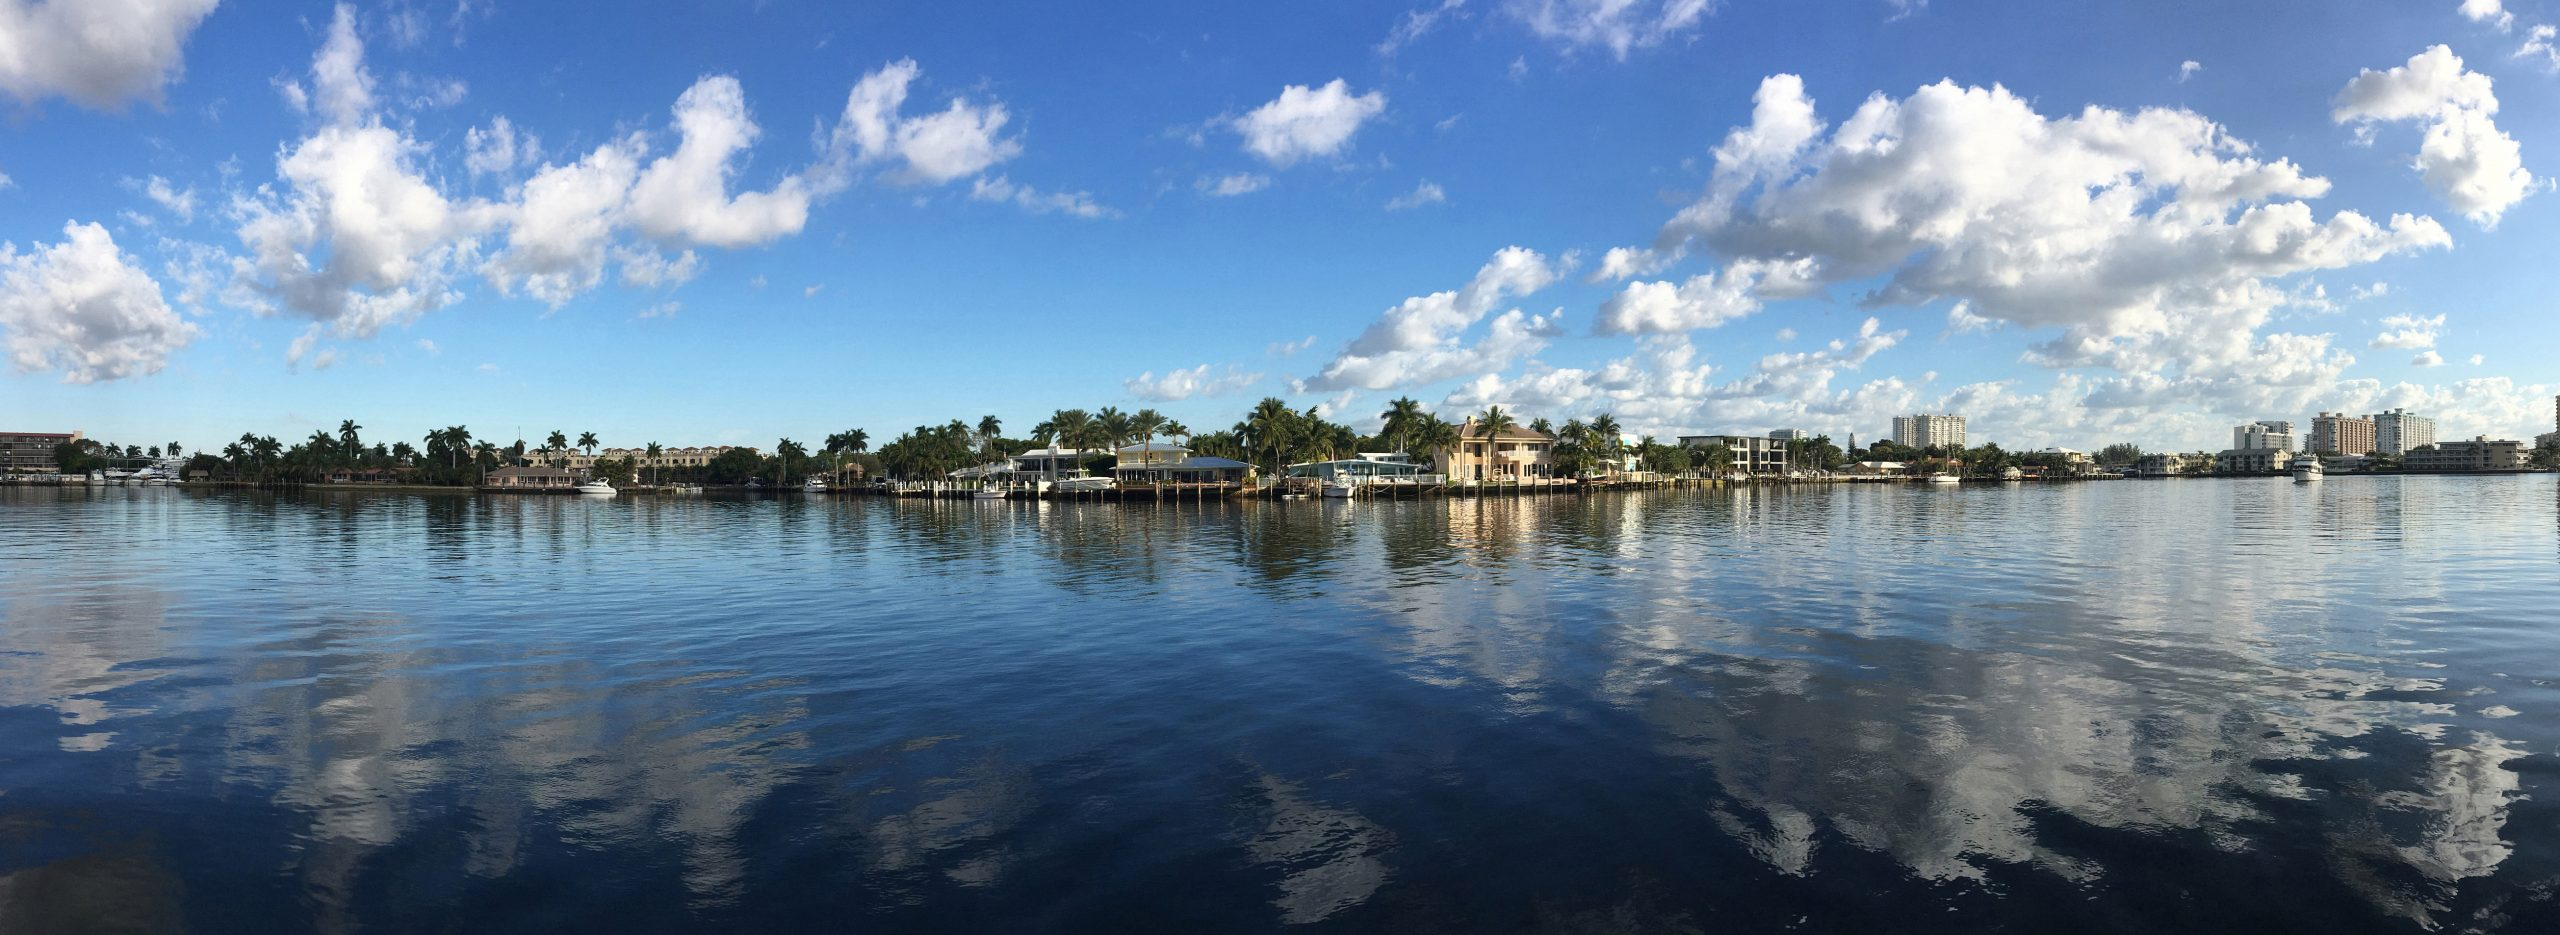 Pompano Beach residential area